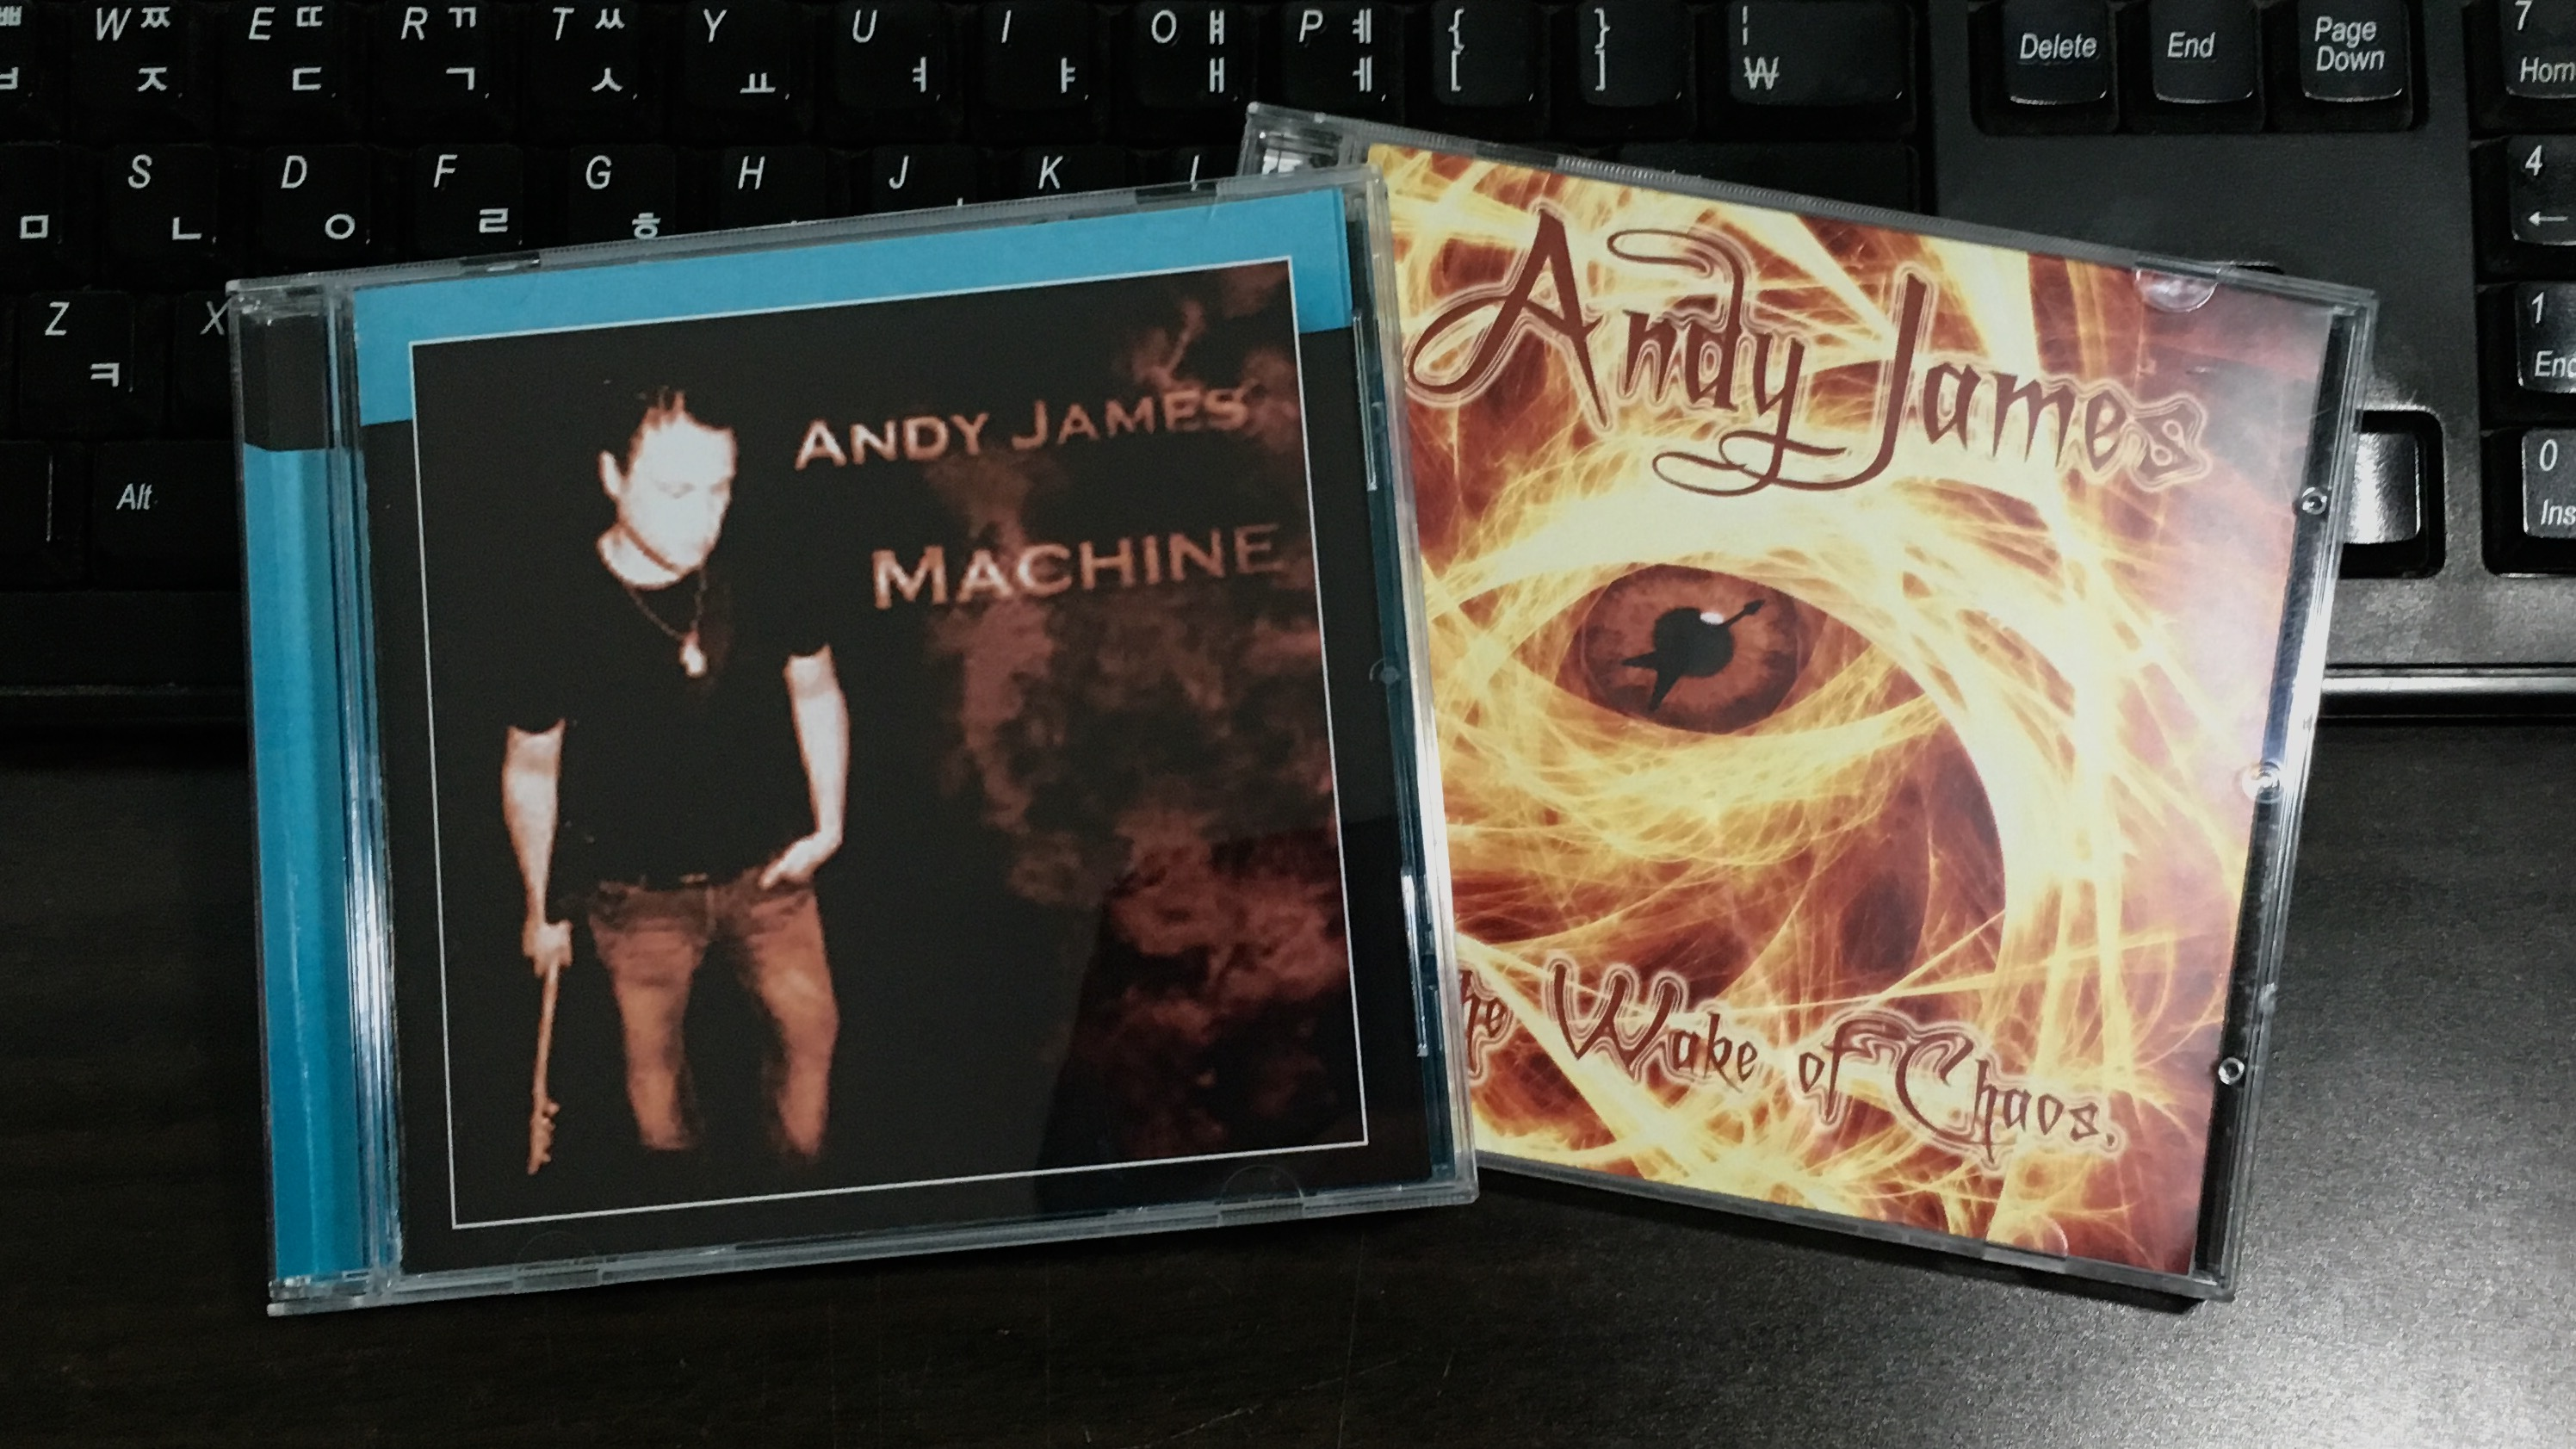 Machine, In The Wake Of Chaos - Andy J..